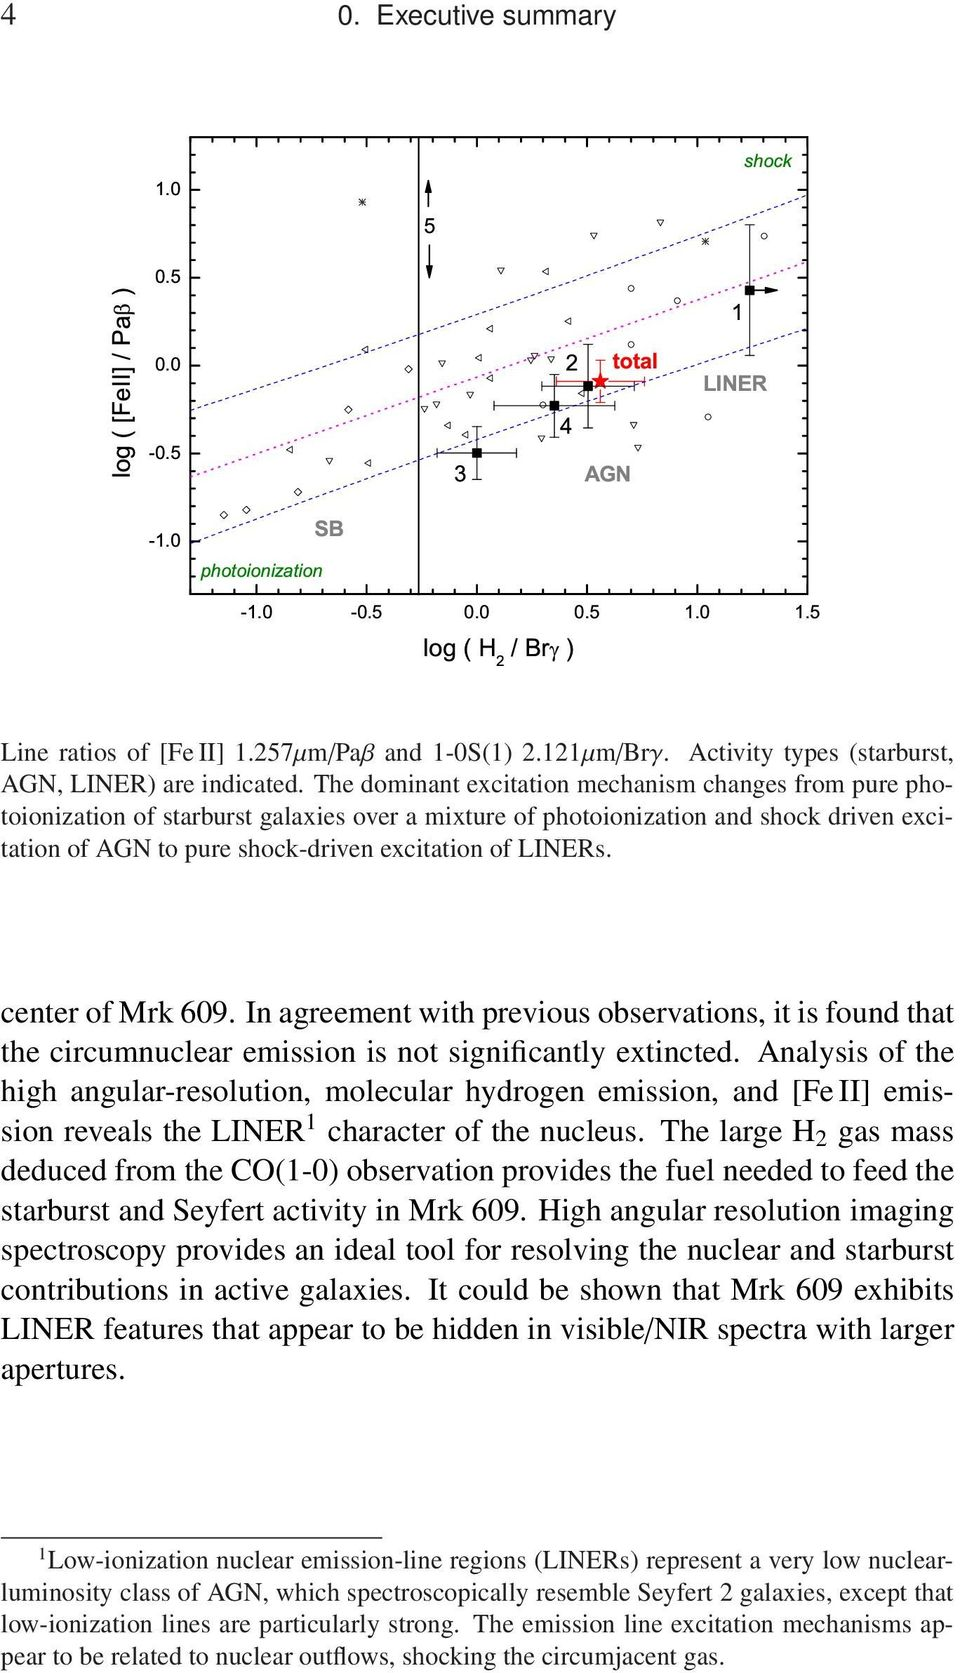 The dominant excitation mechanism changes from pure photoionization of starburst galaxies over a mixture of photoionization and shock driven excitation of AGN to pure shock-driven excitation of